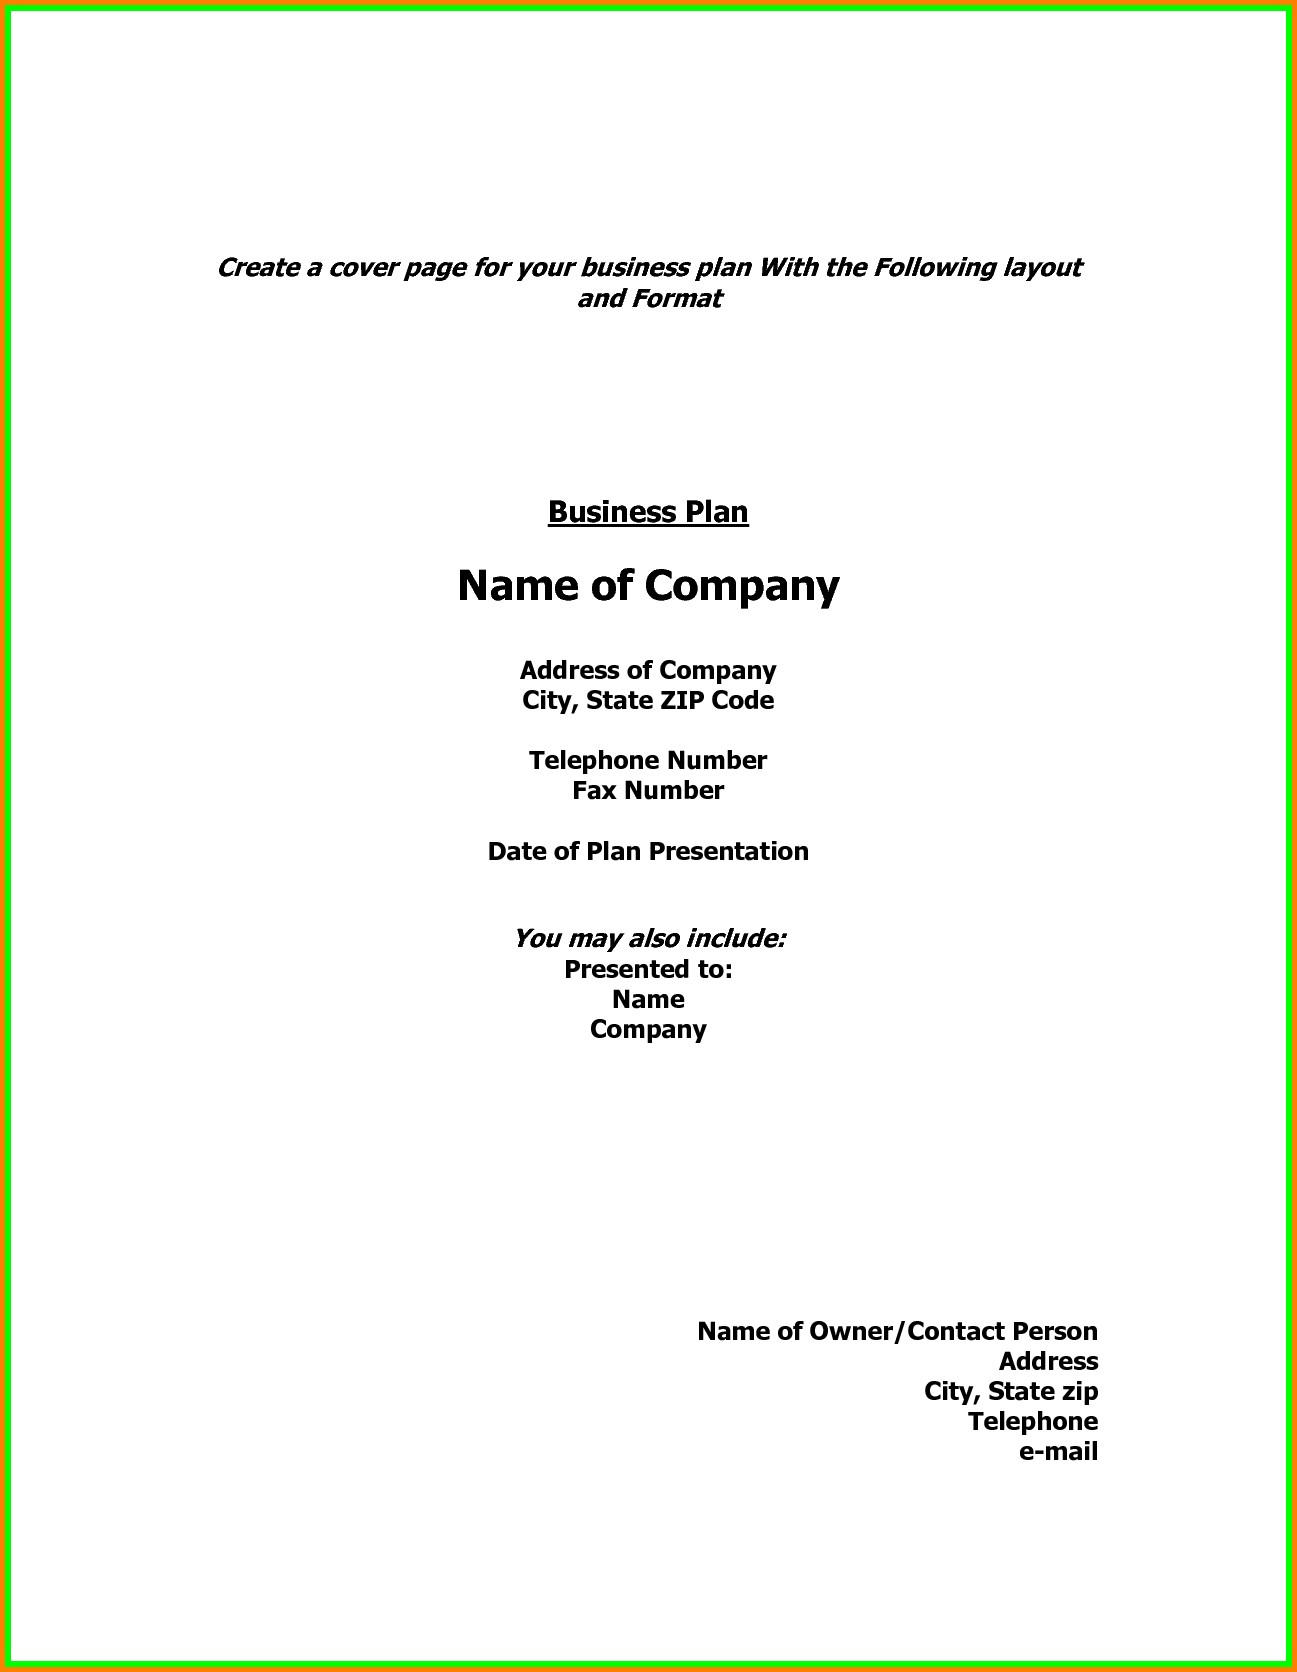 Business Plan Cover Page Sample Business Form Templates